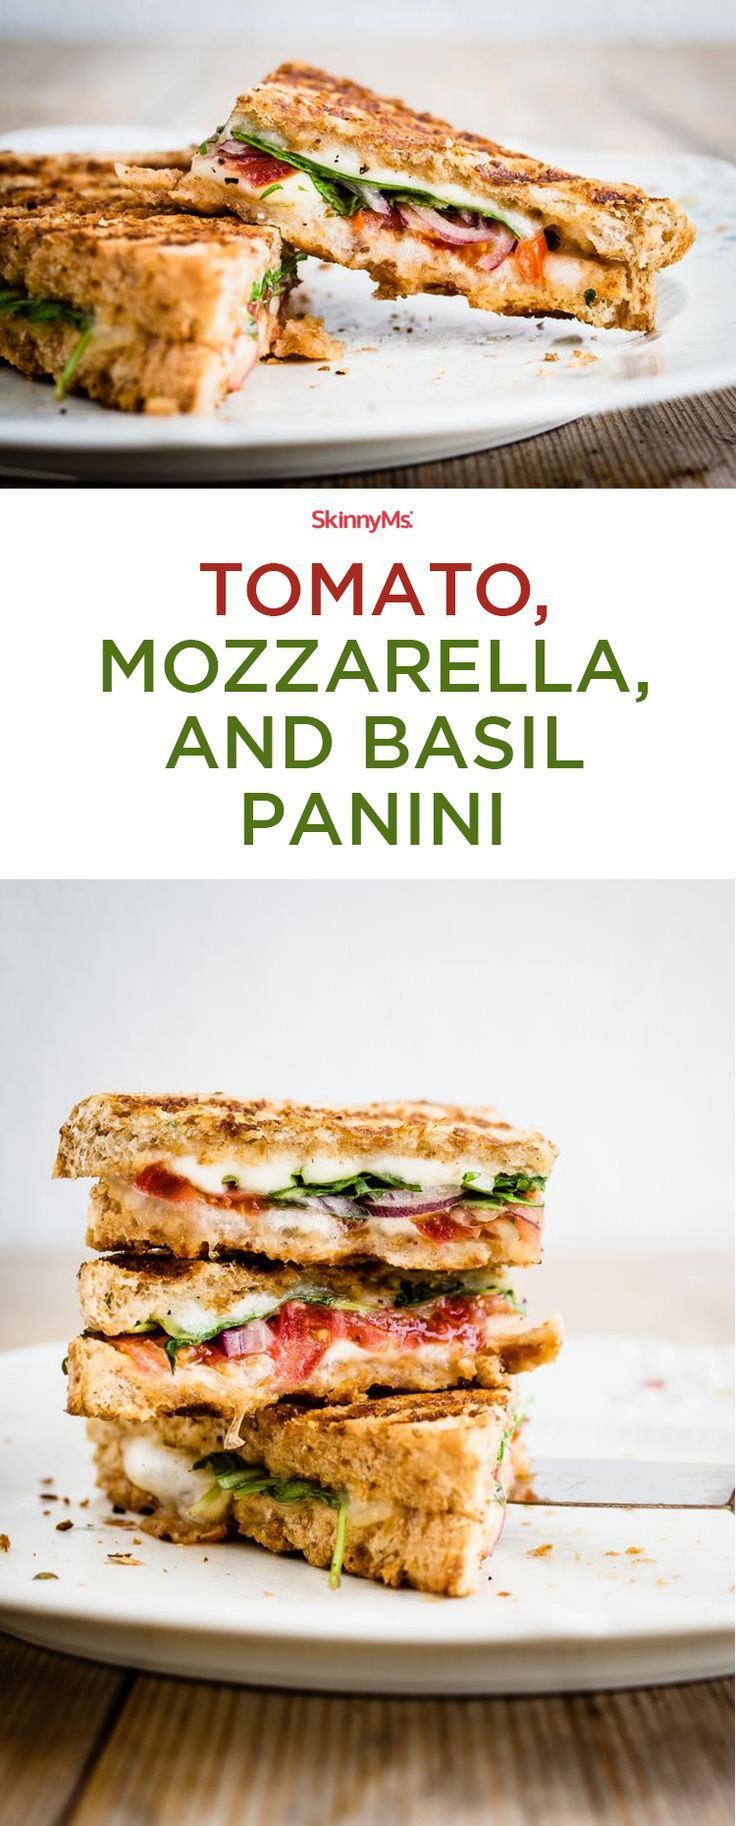 Healthy Panini Recipes  3878 best images on Pinterest